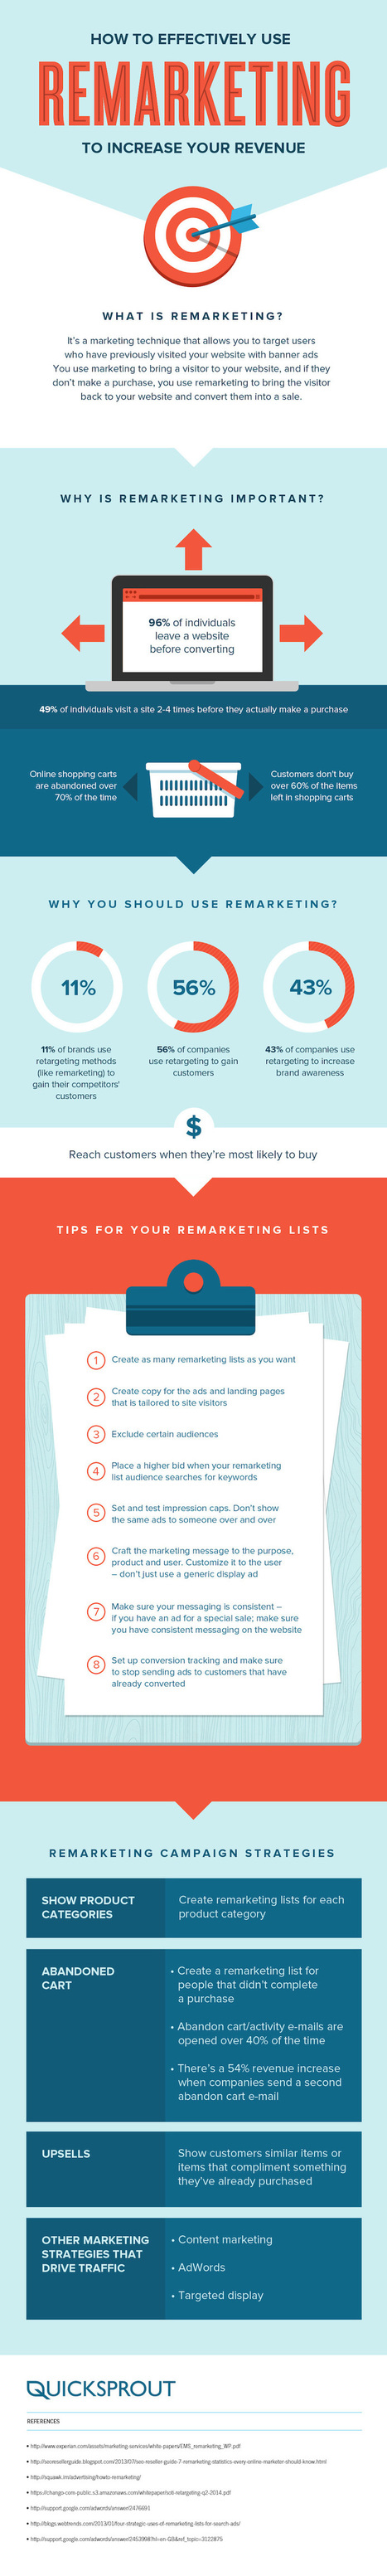 How to Effectively Use Remarketing to Increase Your Revenue | infografias - infographics | Scoop.it